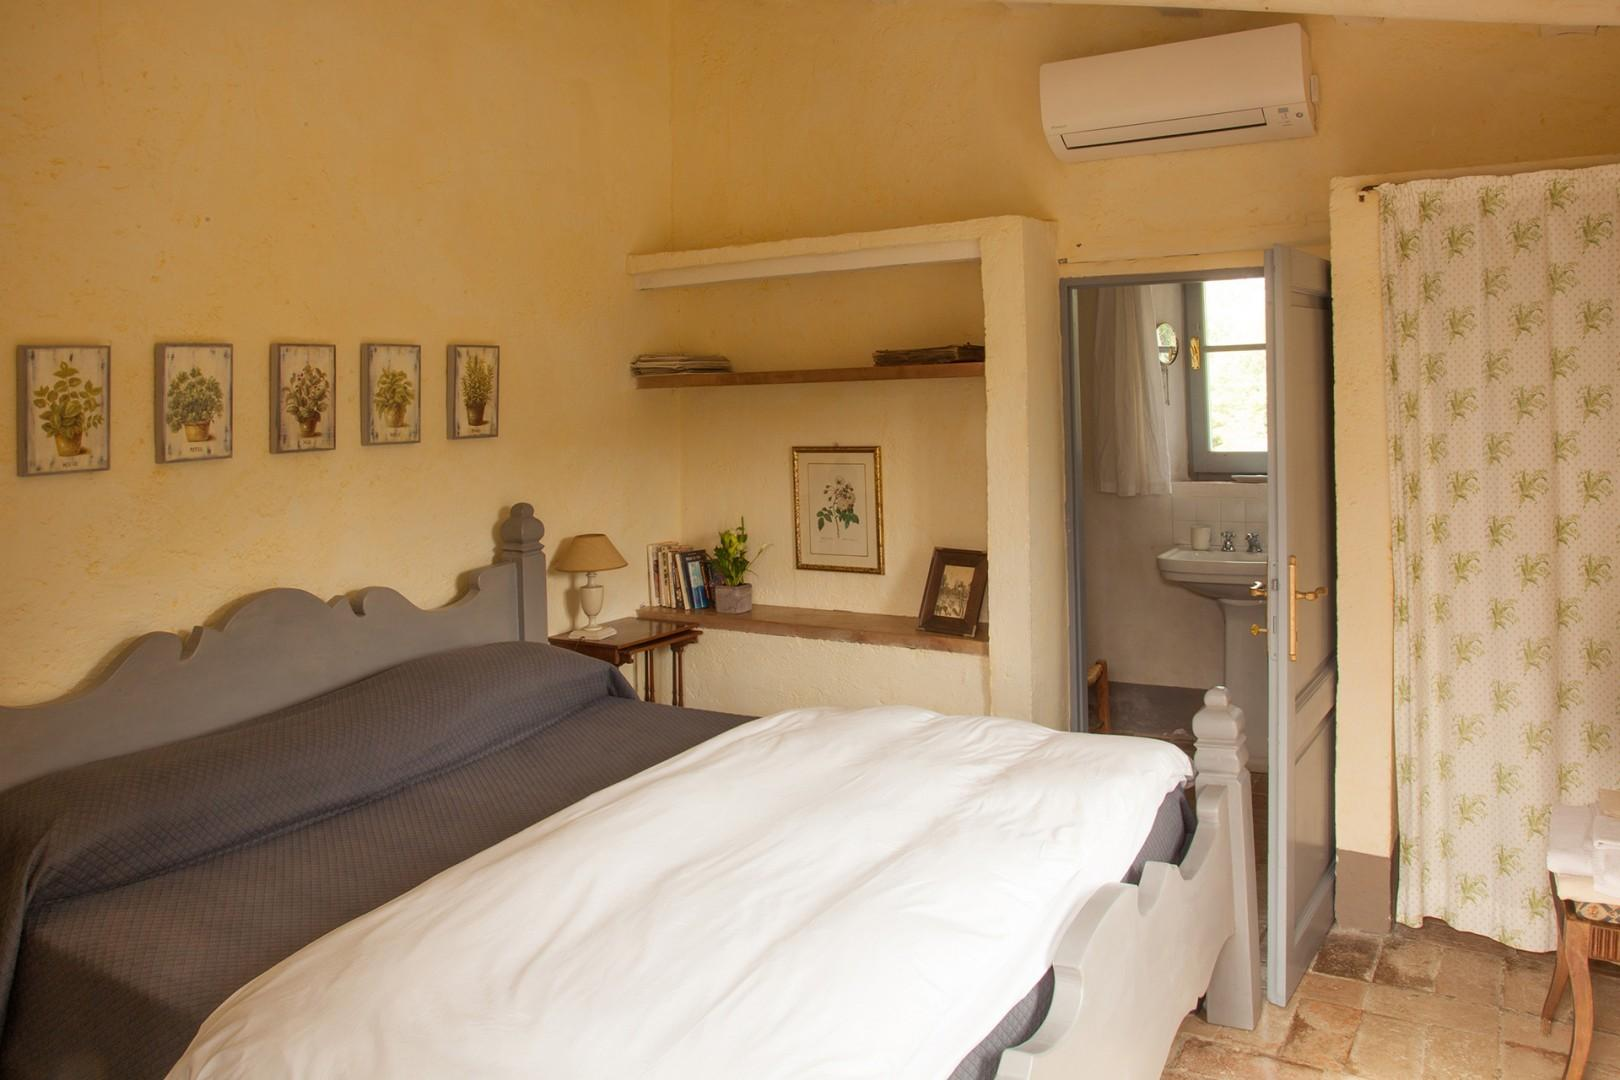 Bedroom 2 is independent with en suite bathroom. It is accessed from outside the house.